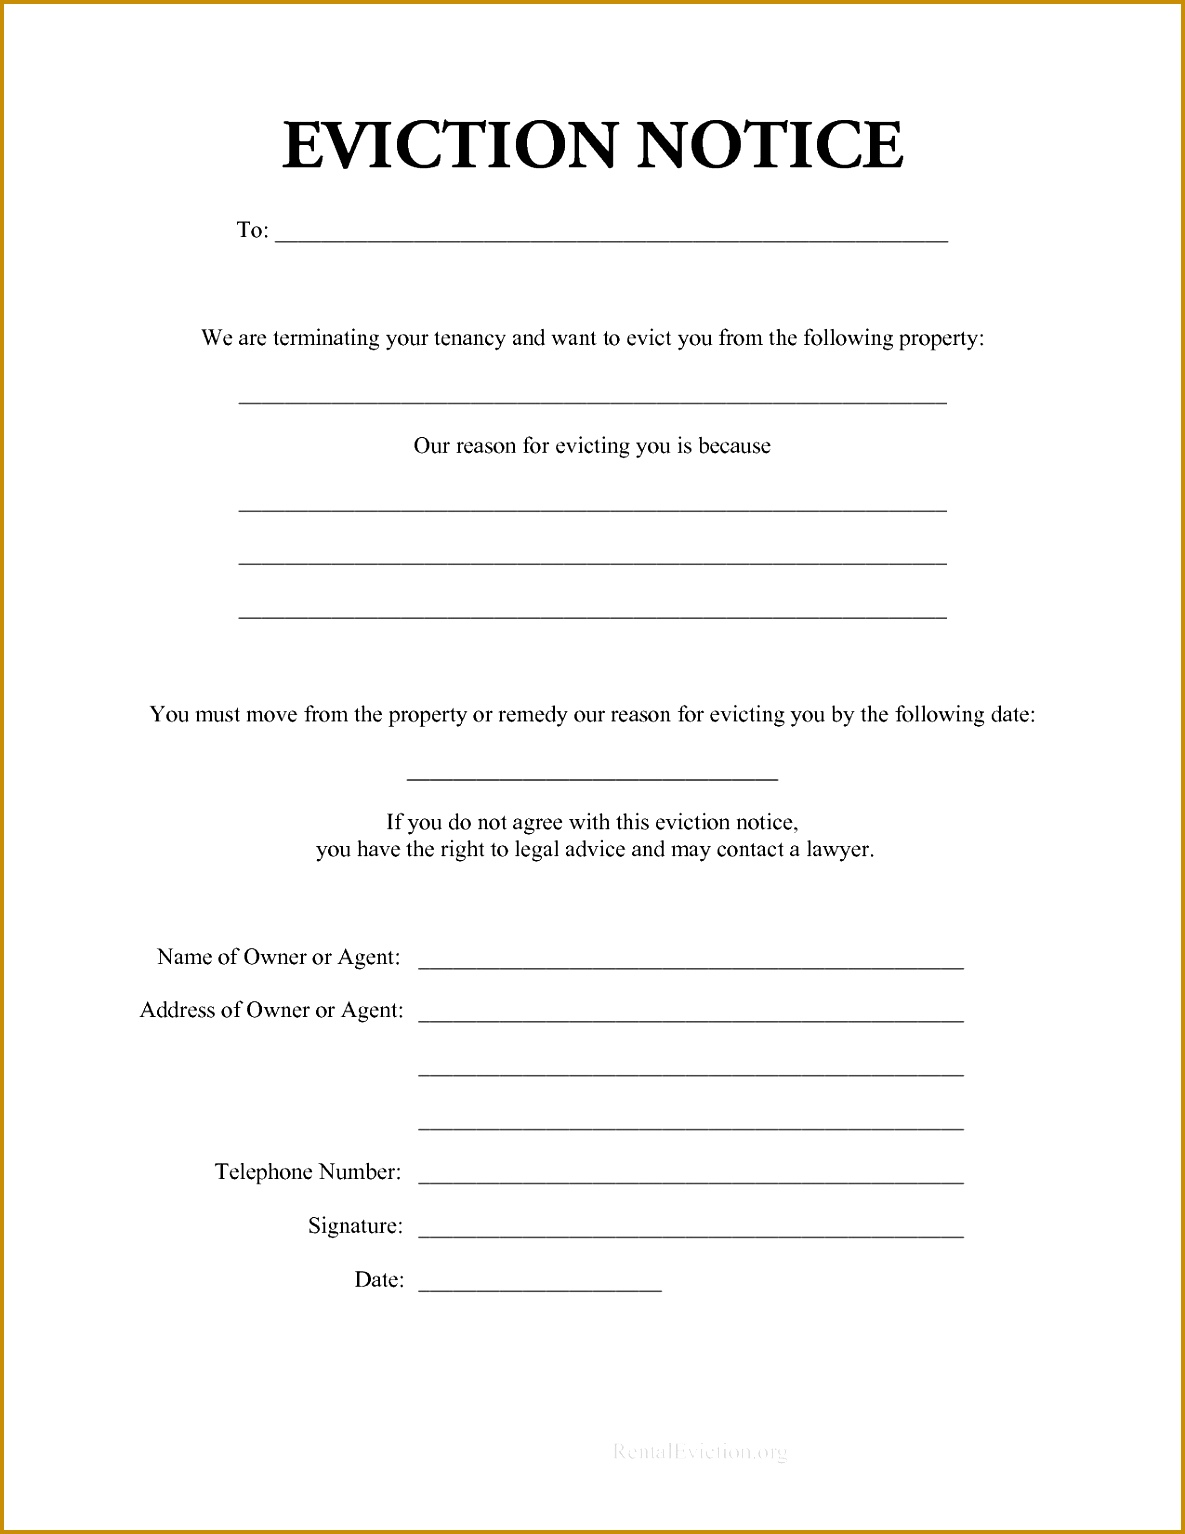 Legal Advice Letter Template 06959 Printable Eviction Notice Notices It Resume Cover Letter Sample